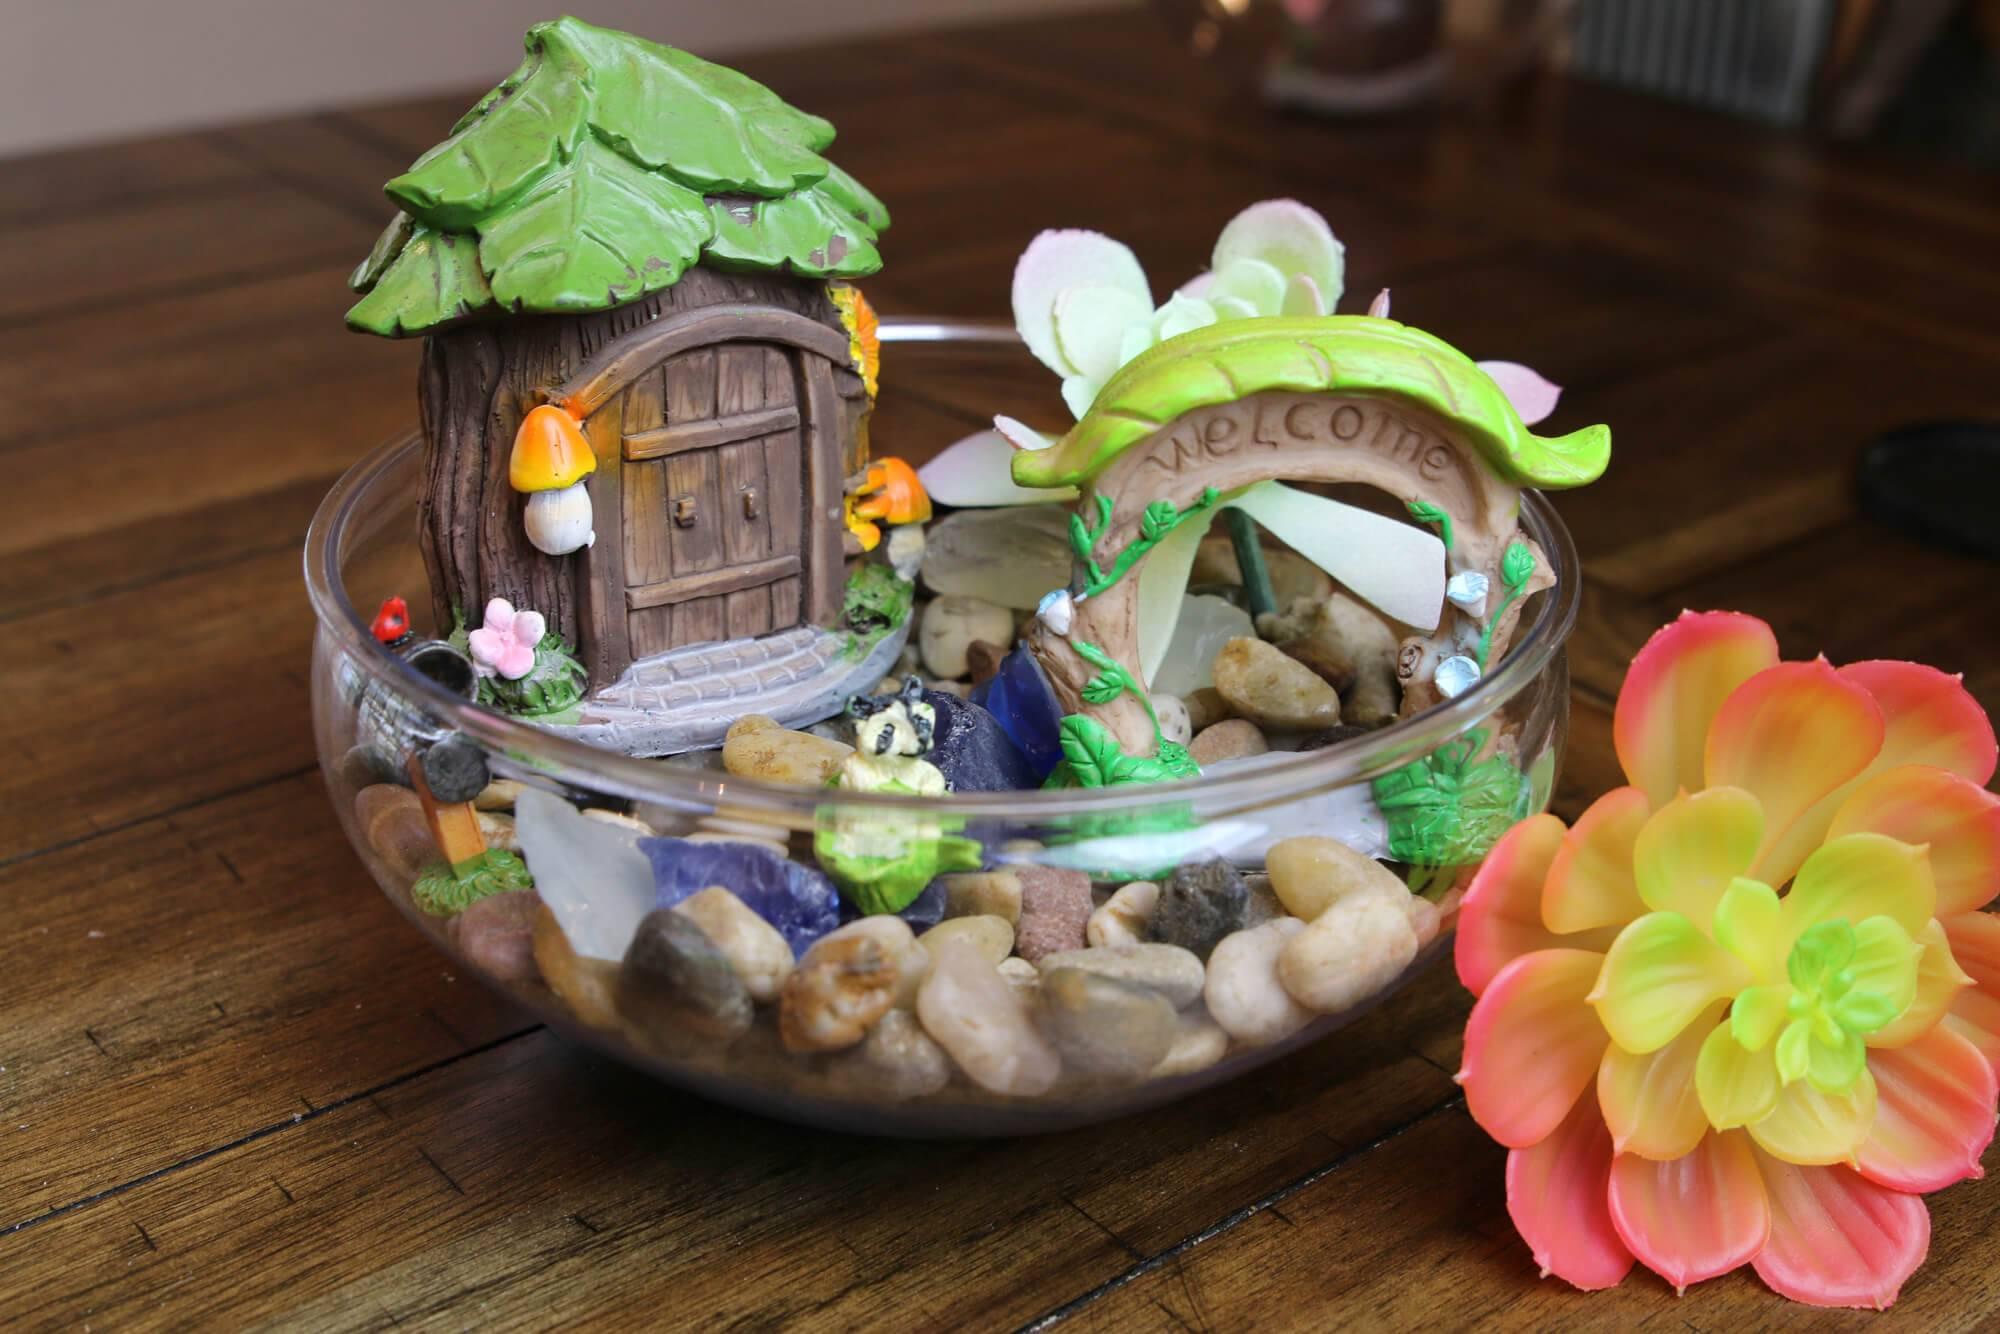 House and pebbles inside a clear glass